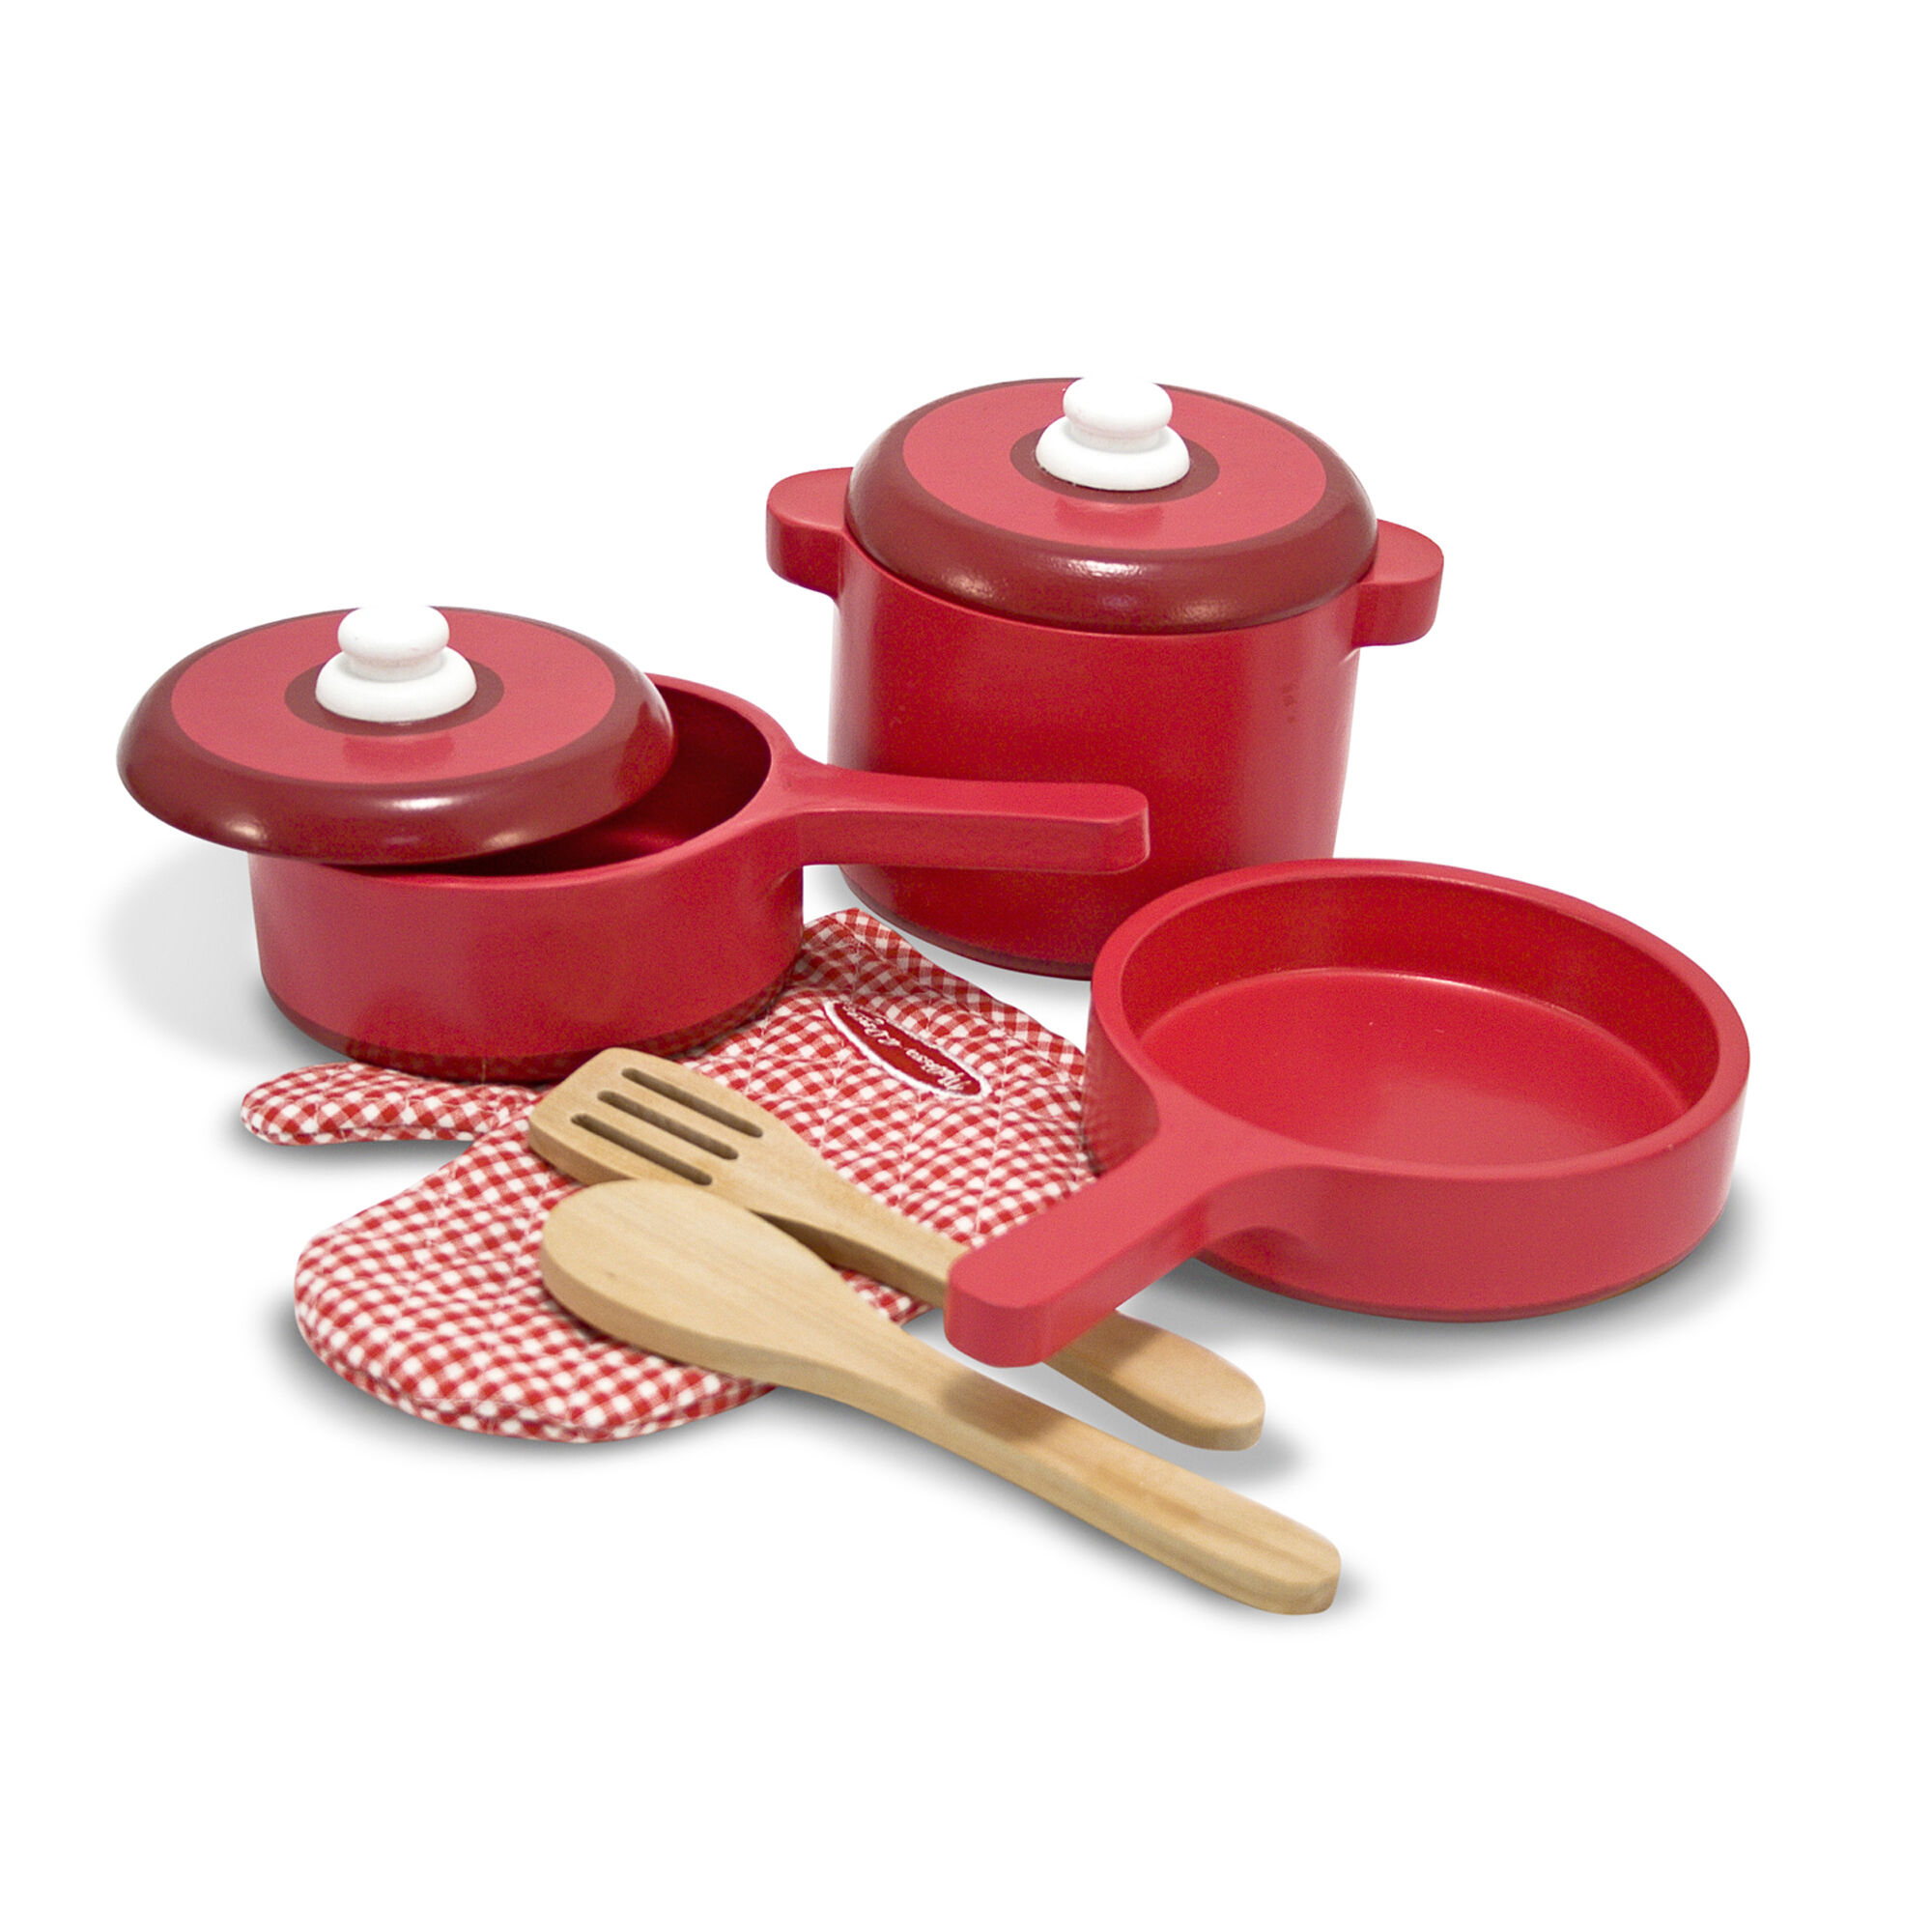 kitchen pots and pans shops play accessory set pot melissa doug